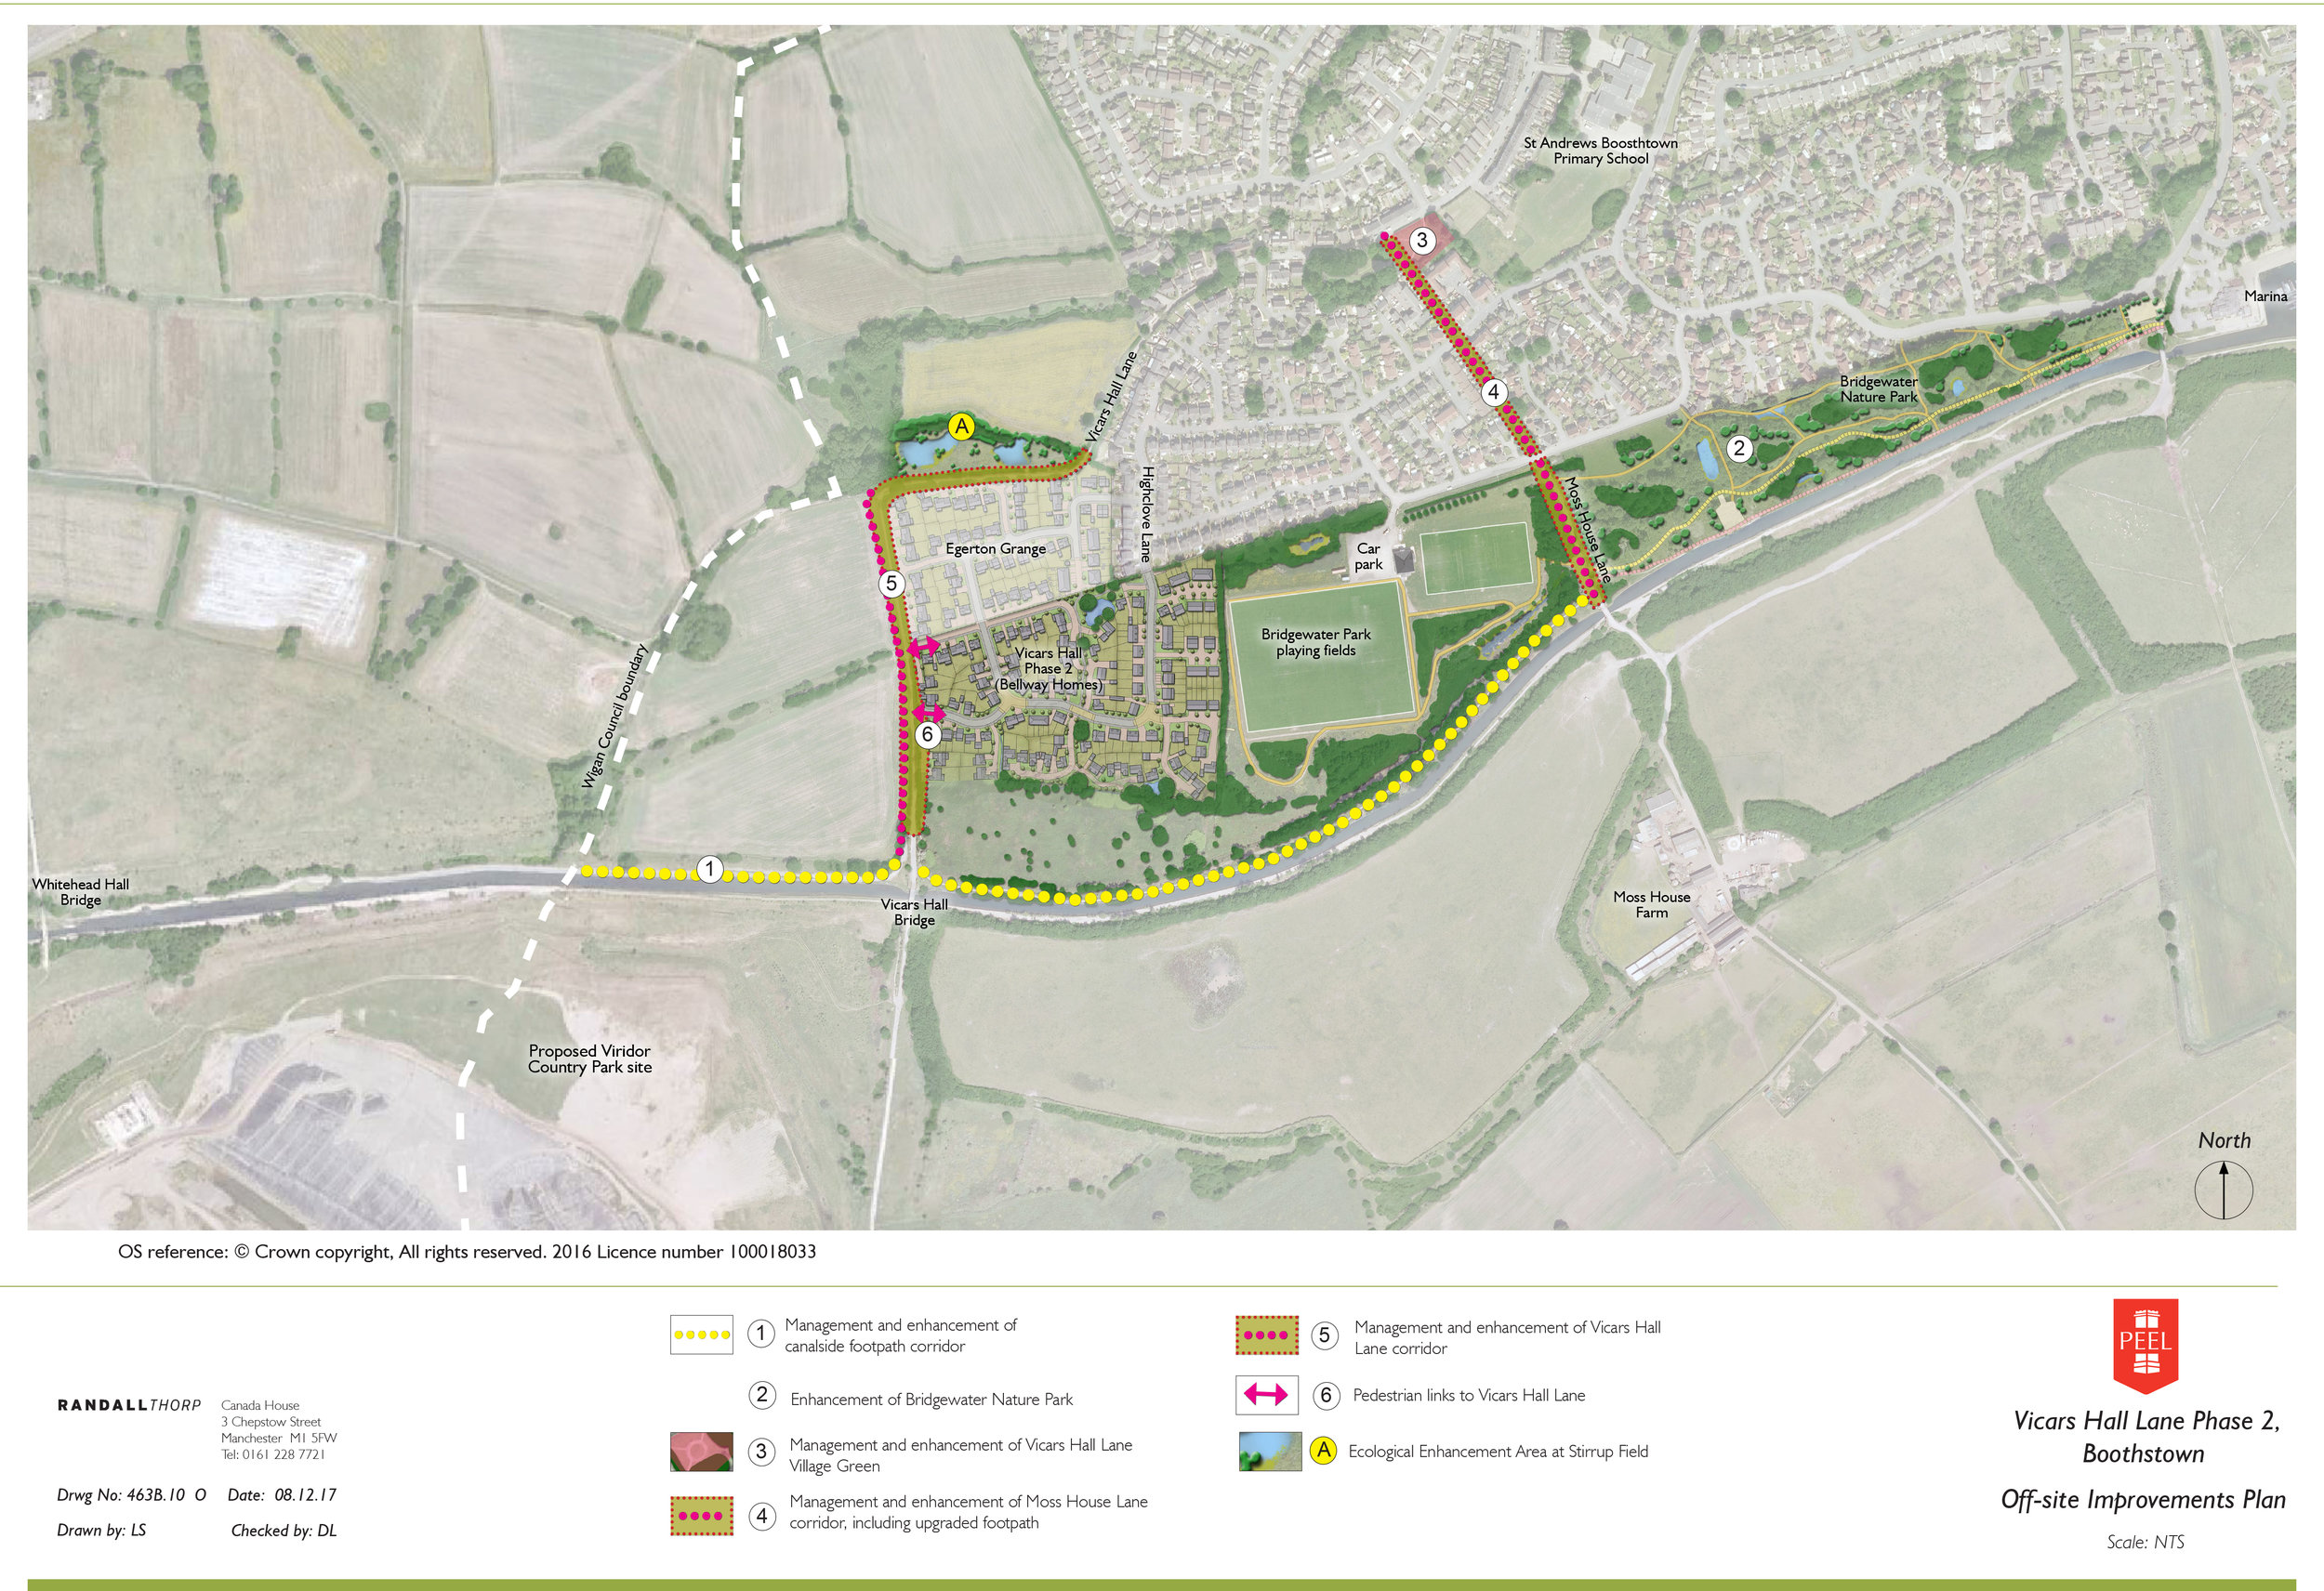 The Recreational Improvements Overview Plan